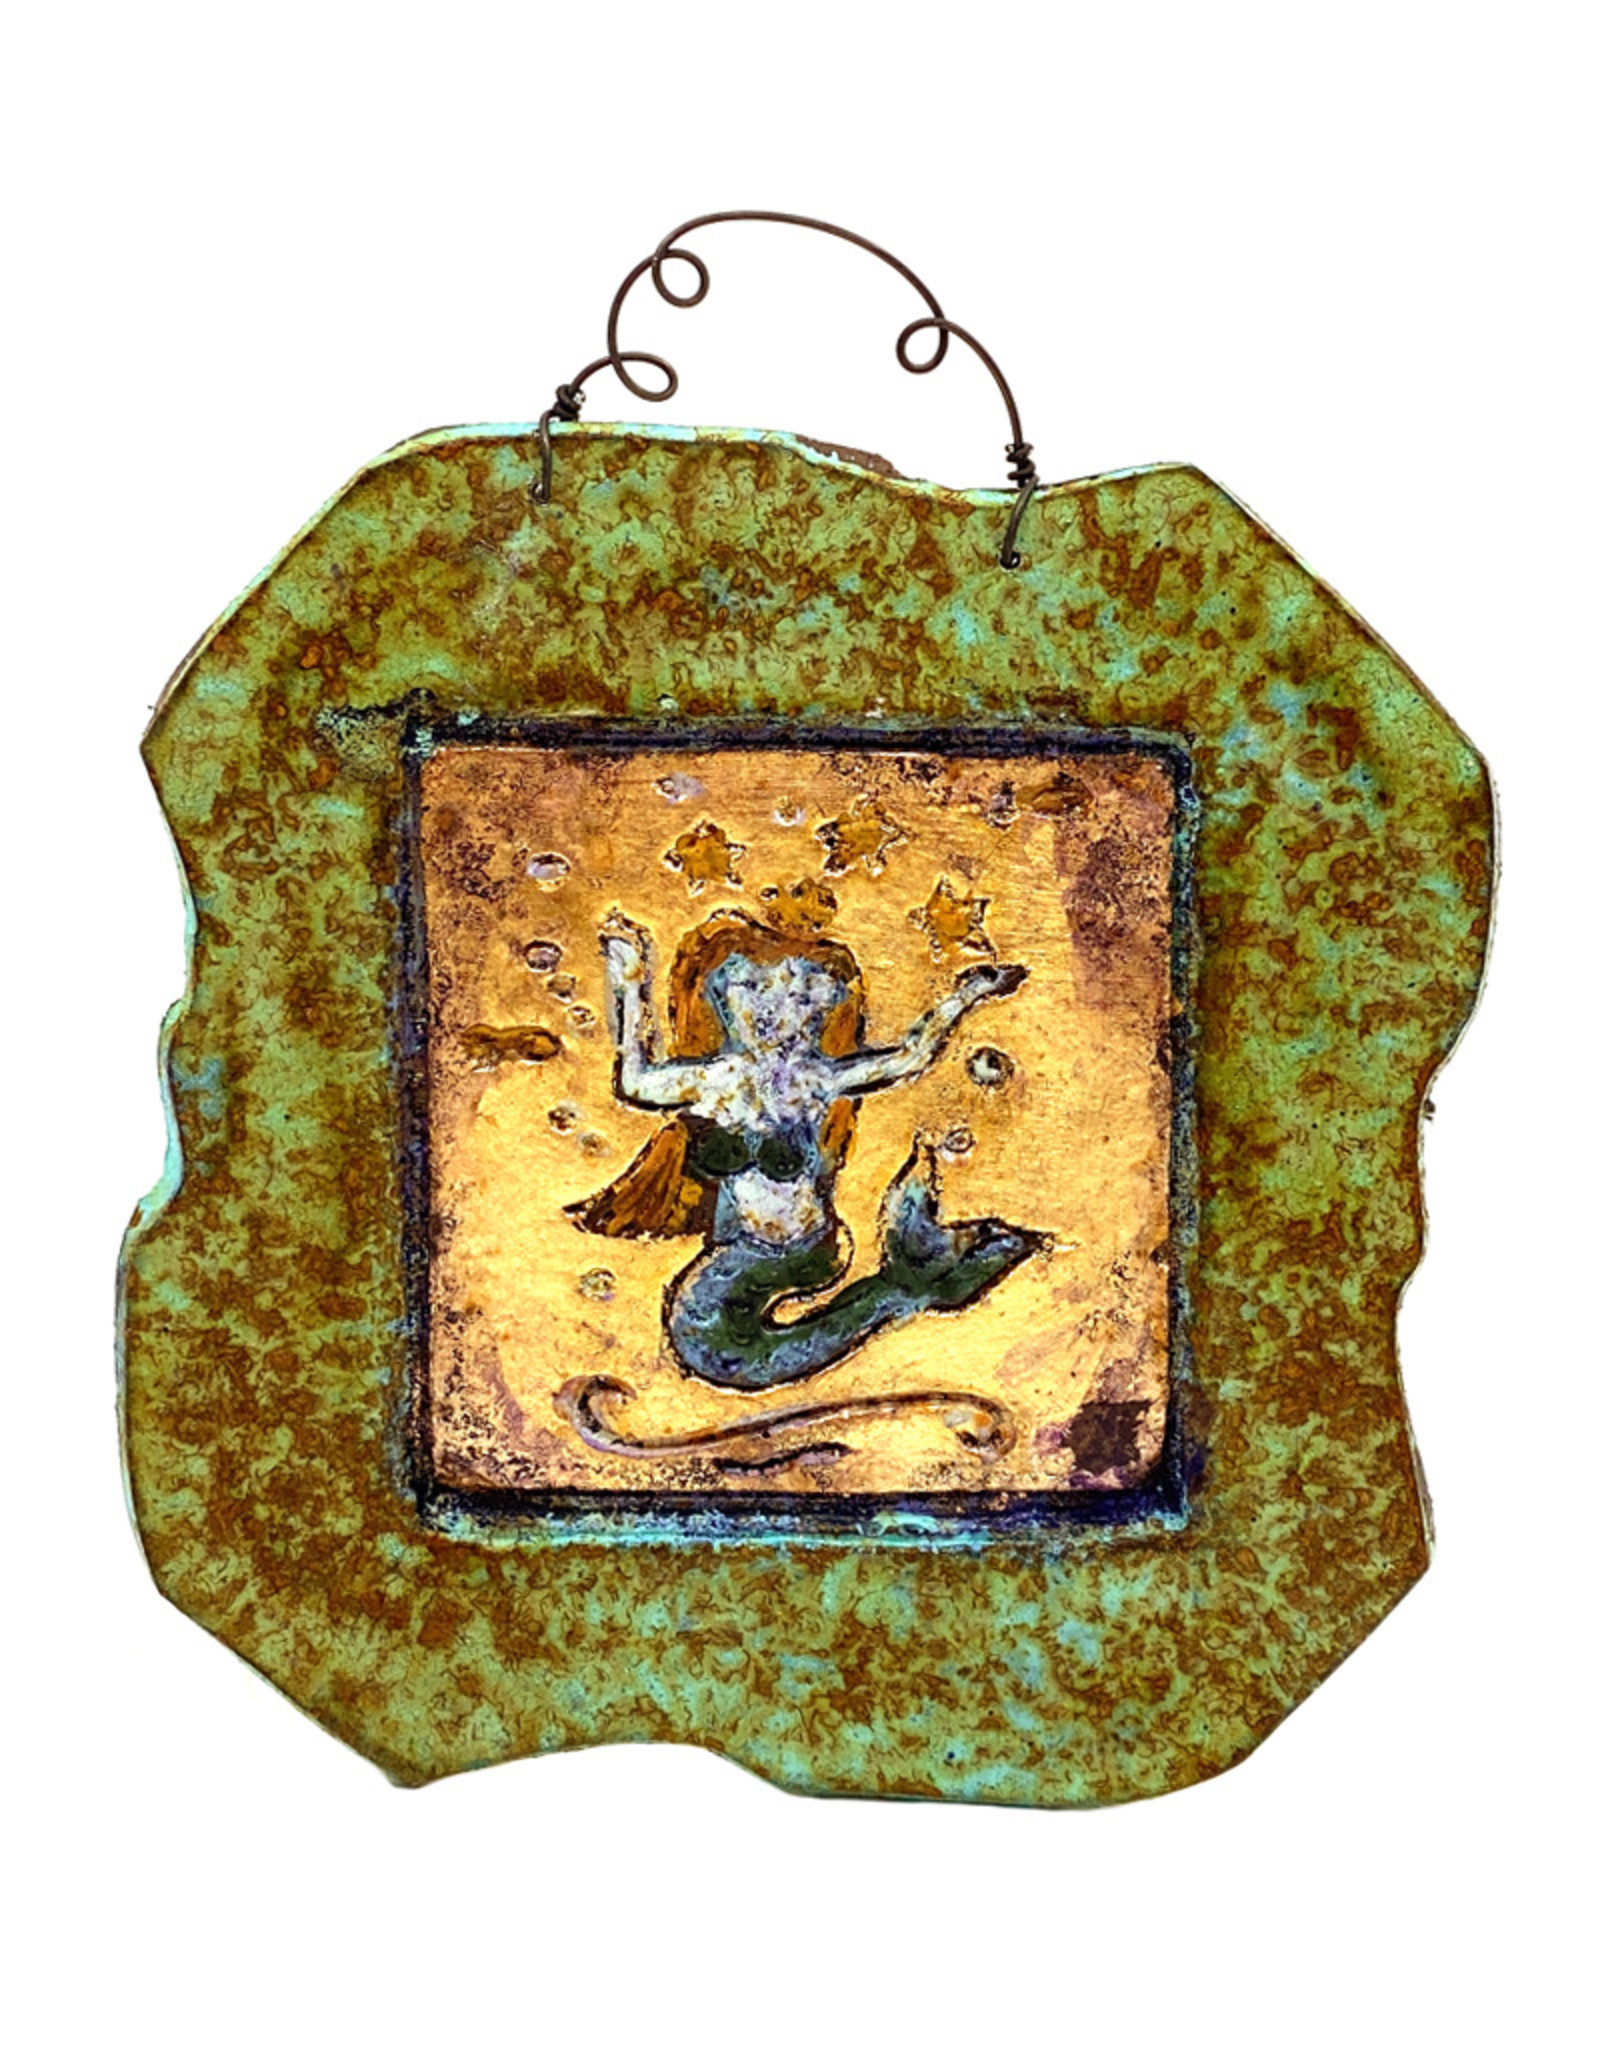 PAPER & STONE SMALL MERMAID WALL PLAQUE